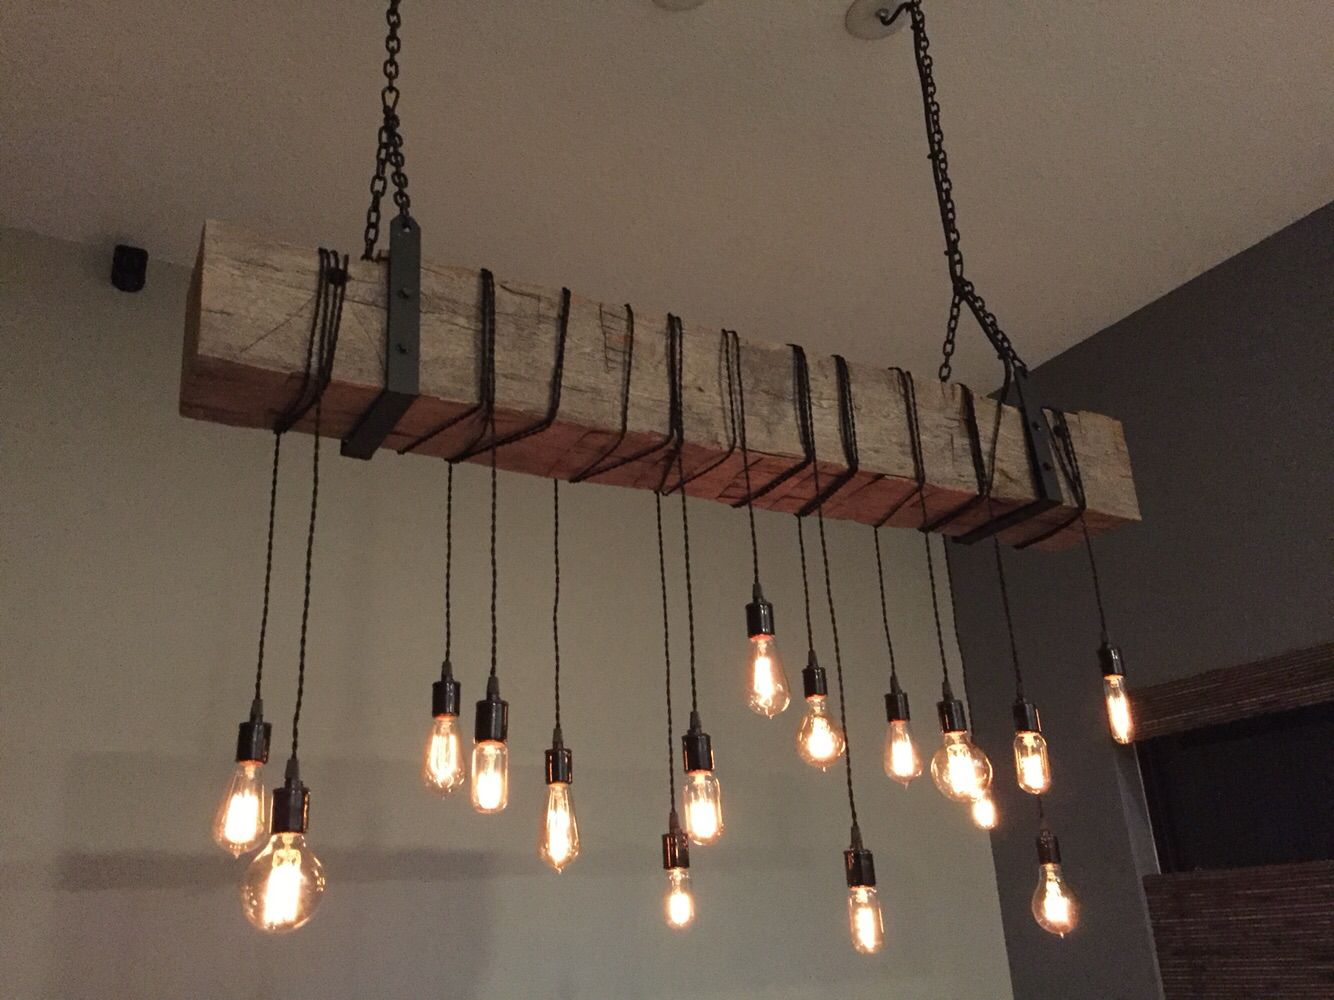 barn beam chandelier/light fixture with wrapped lights, metal